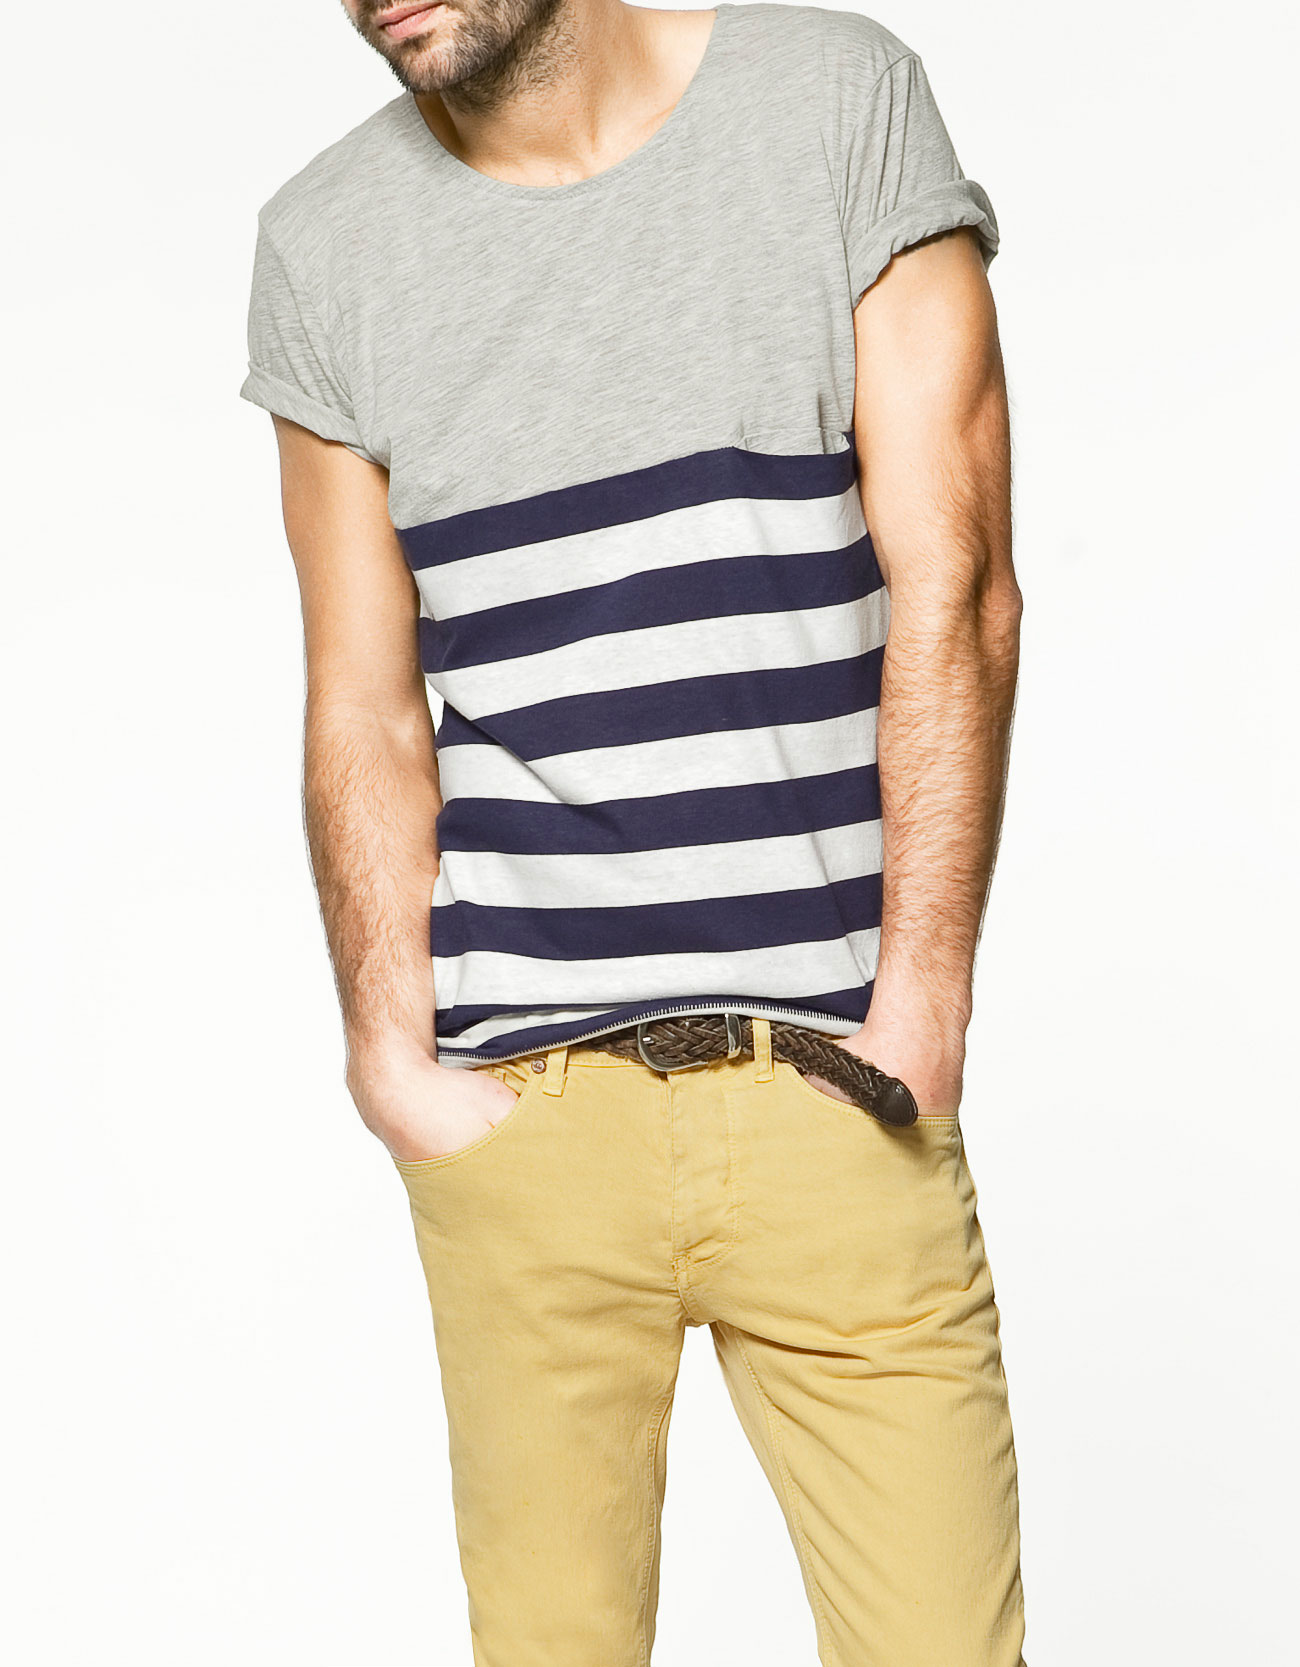 Client makeover marketing man lauren messiah for Grey striped t shirt